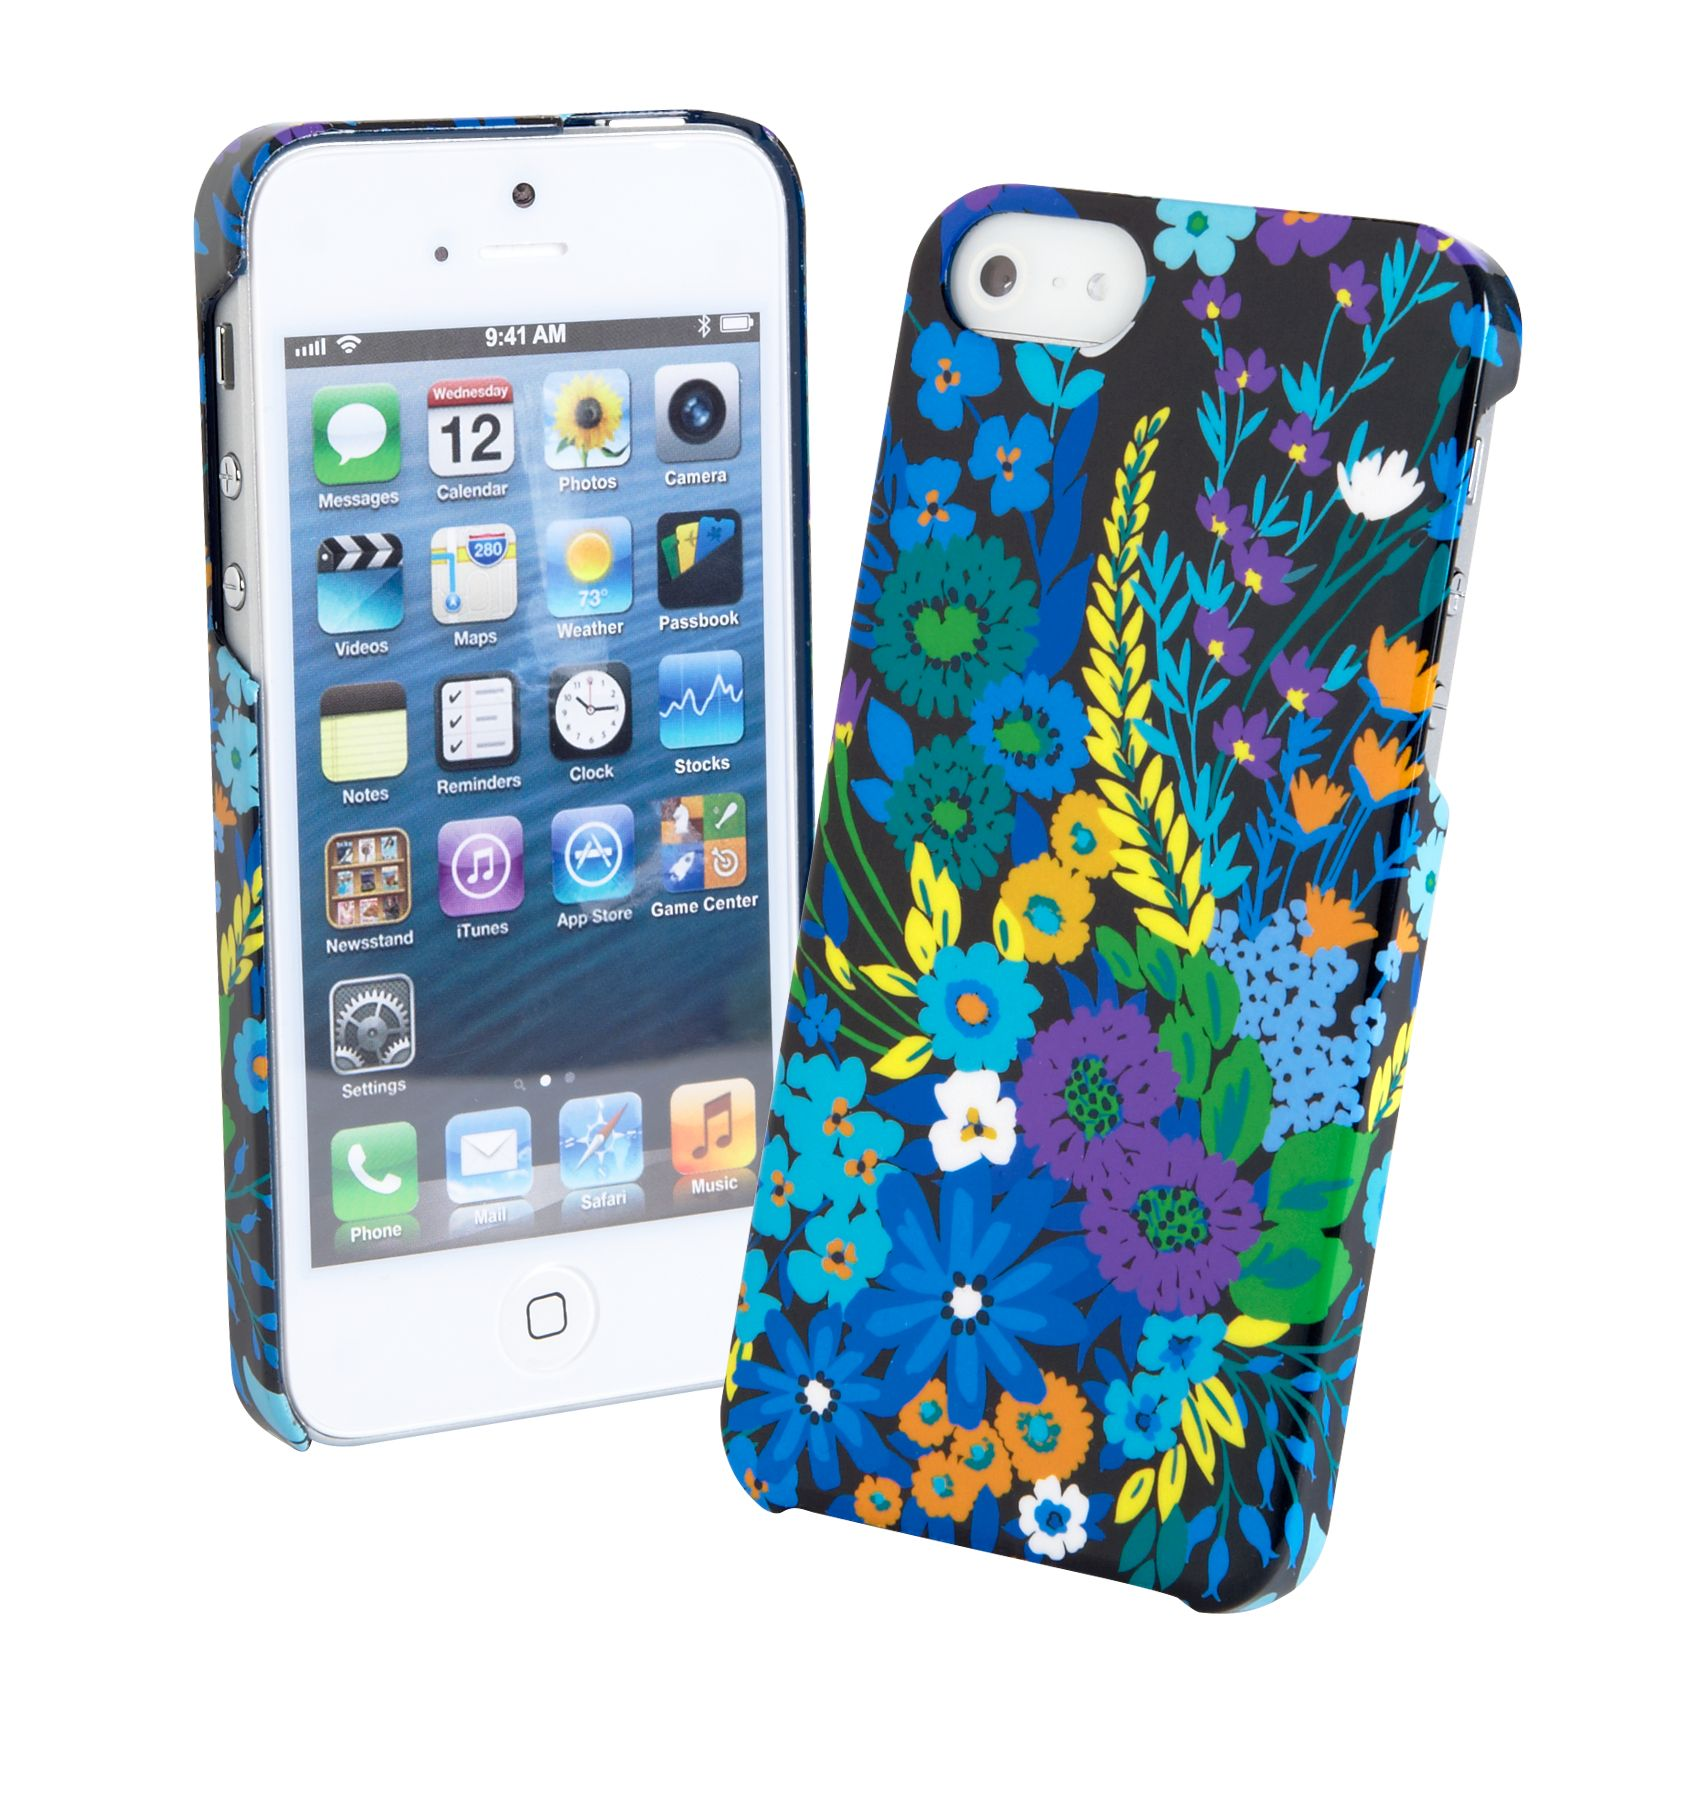 vera bradley iphone 5 case vera bradley snap on phone for iphone 5 ebay 18147